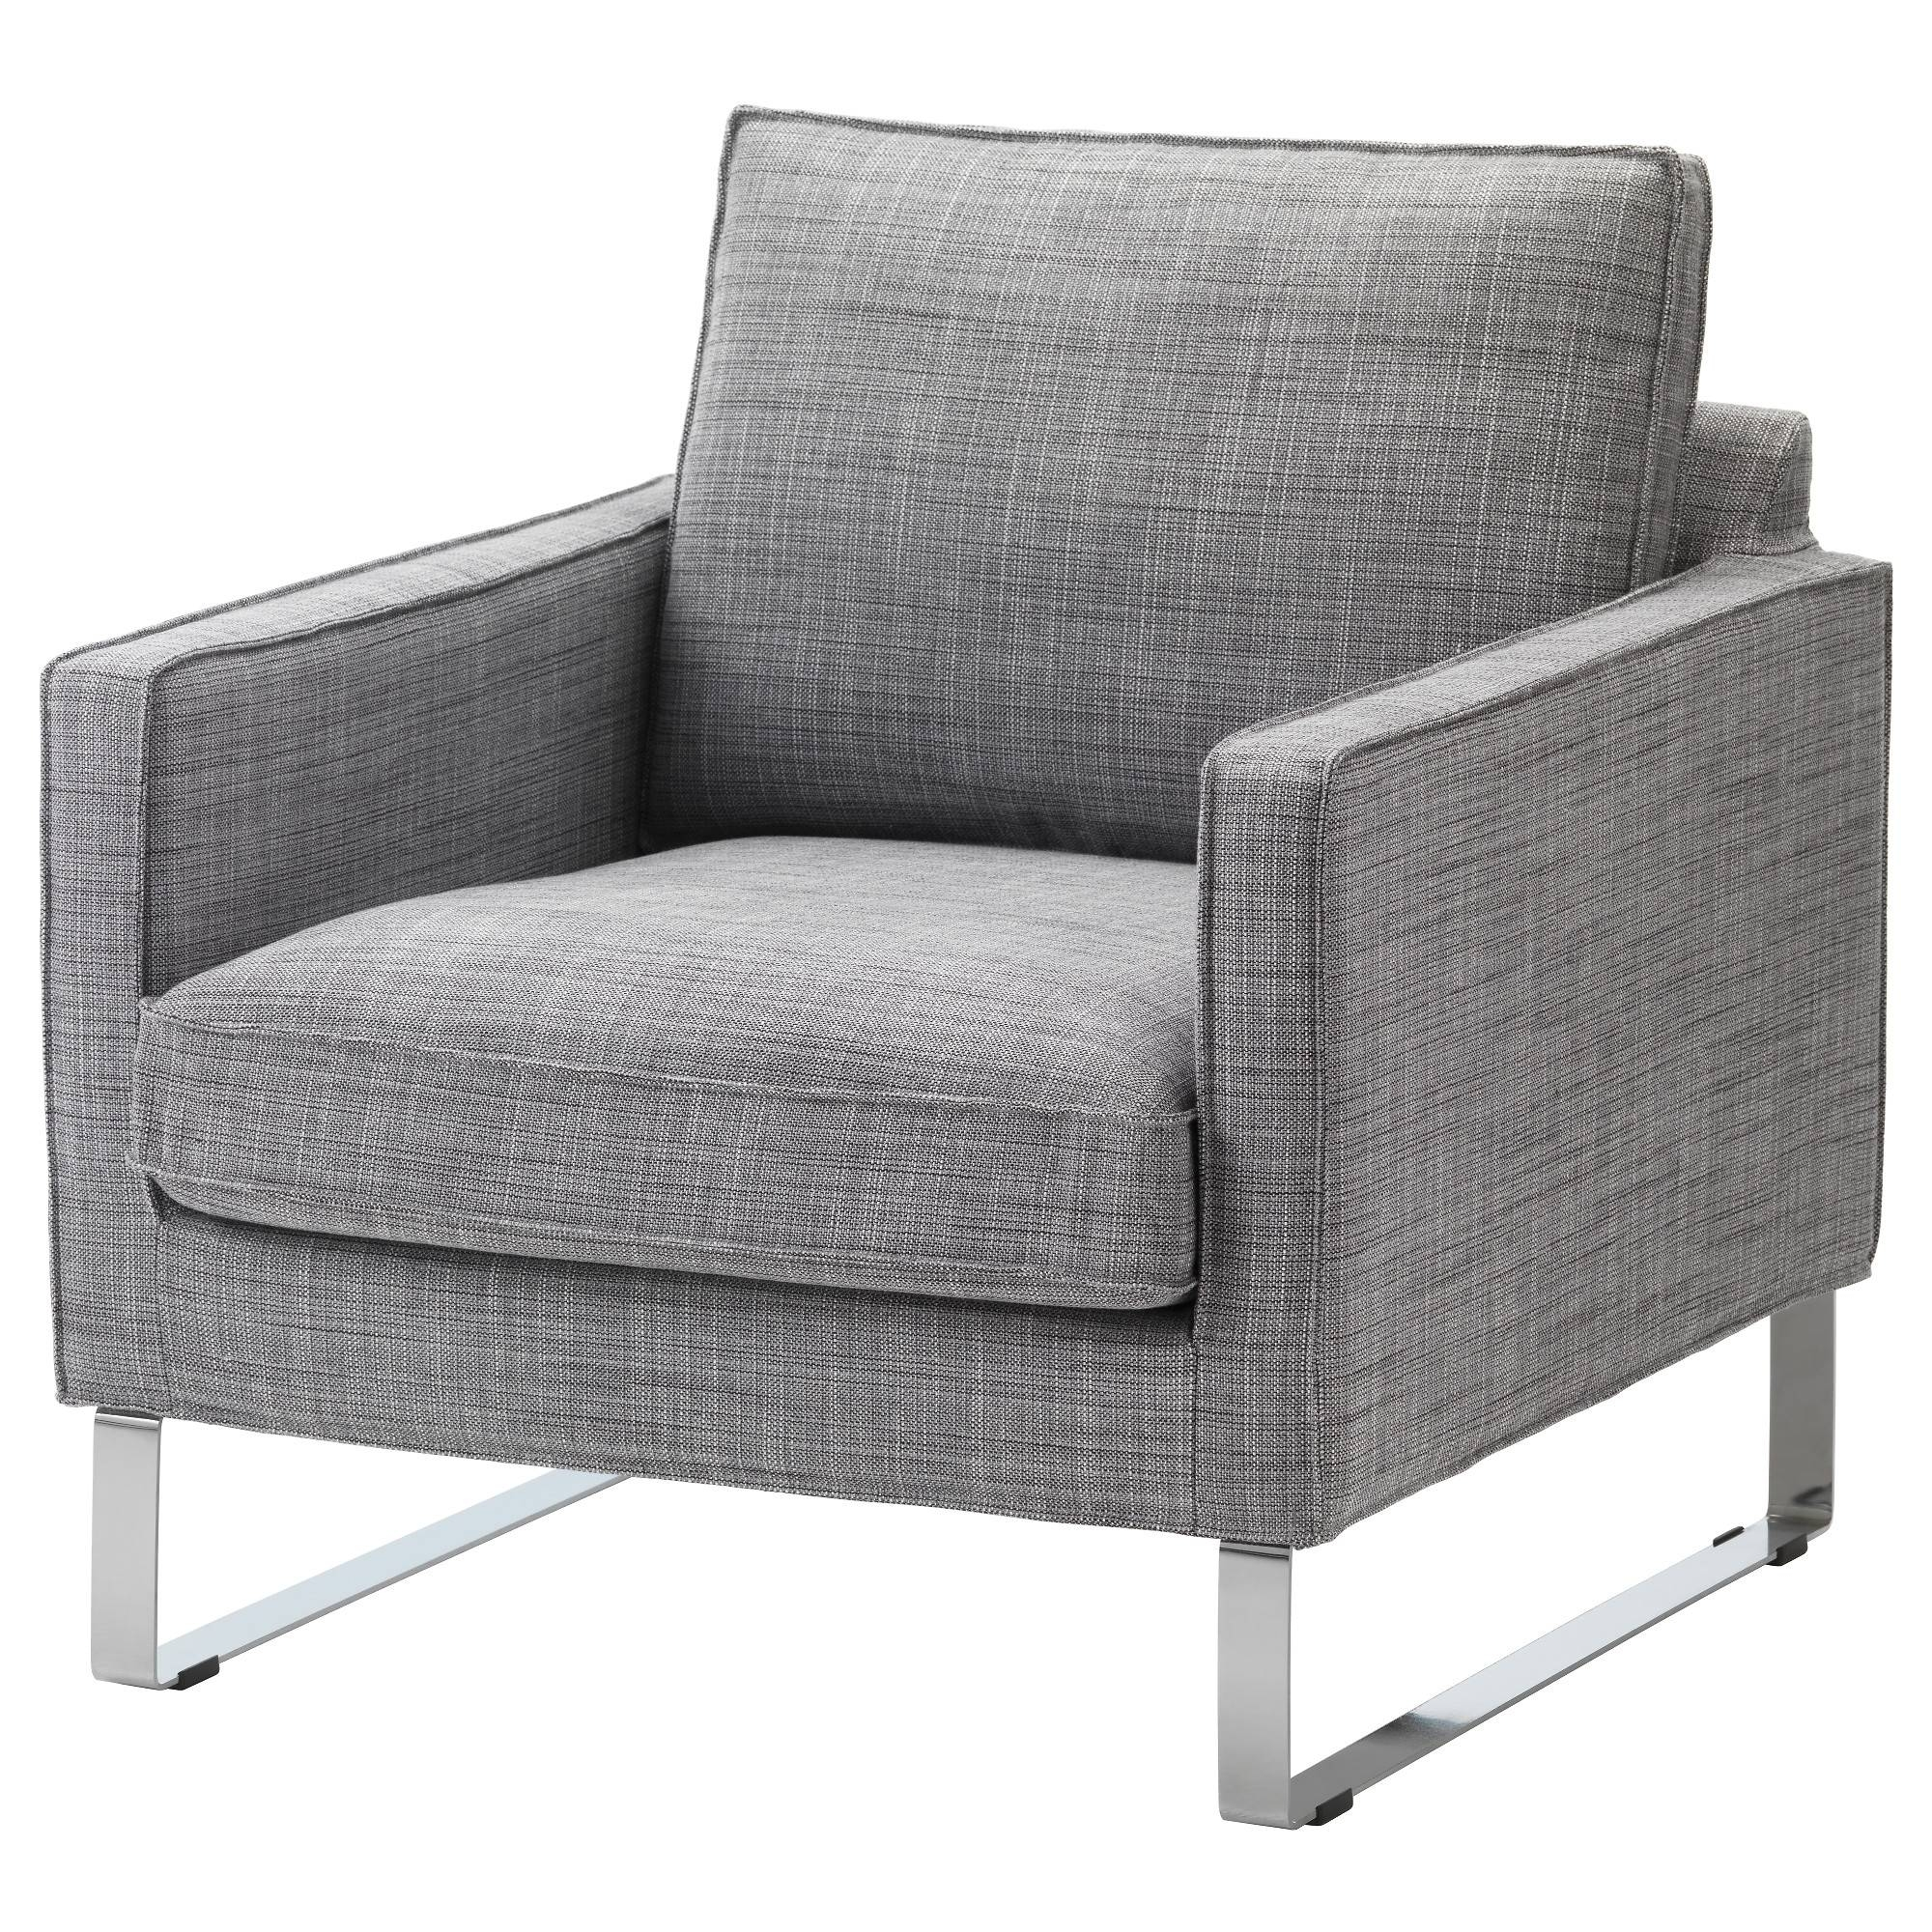 Armchairs - Traditional & Modern - Ikea regarding Spinning Sofa Chairs (Image 2 of 30)